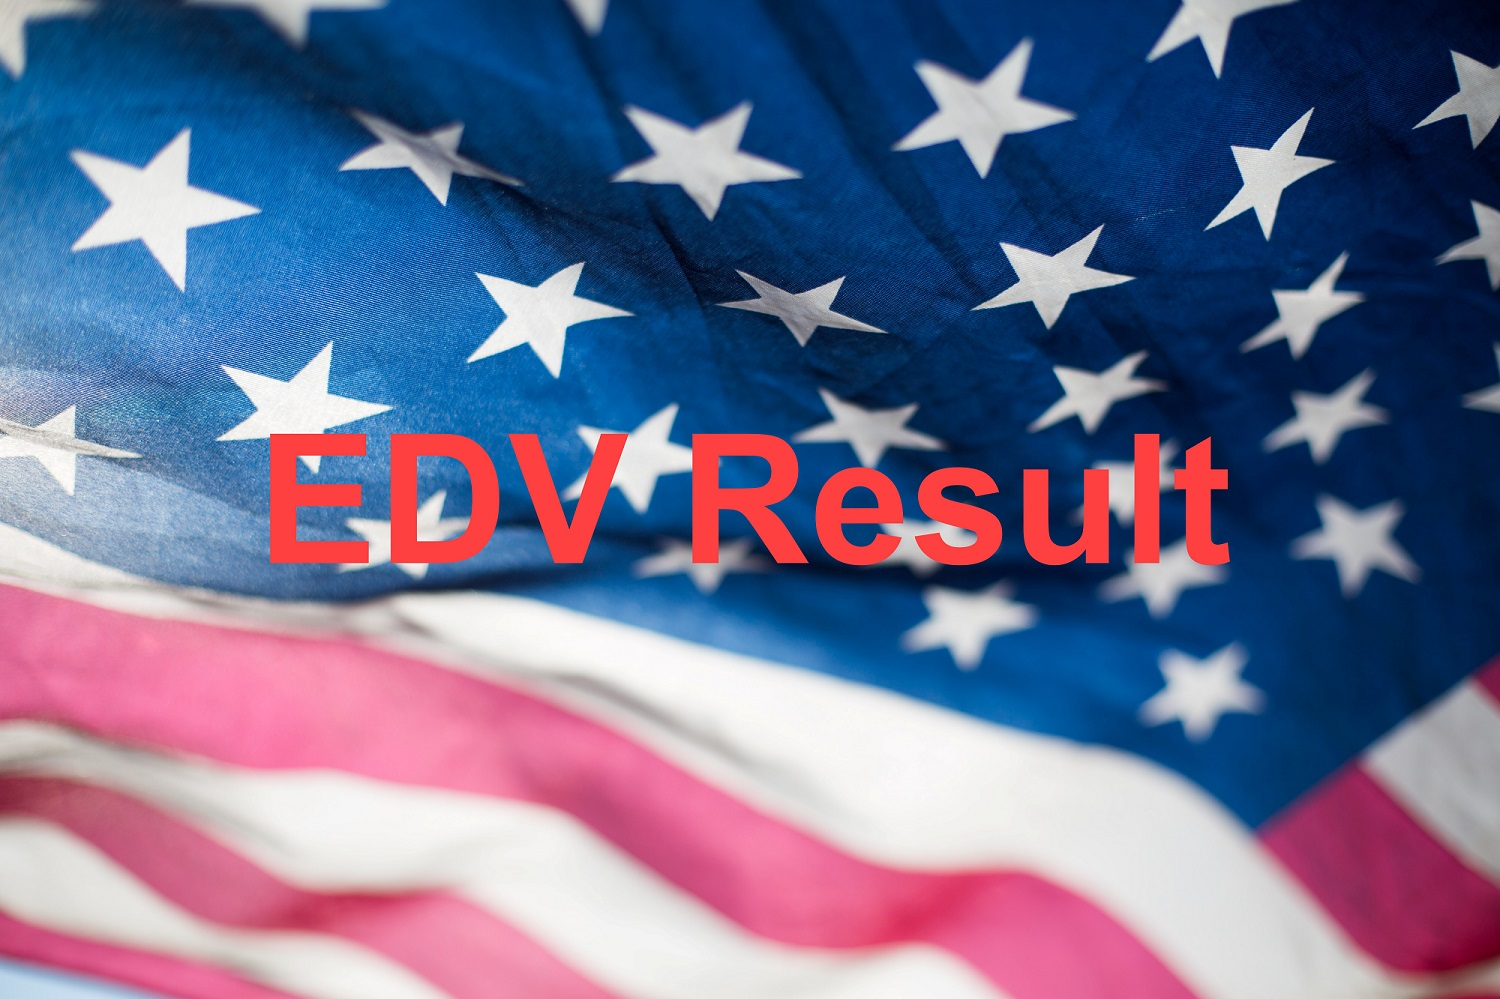 check EDV result